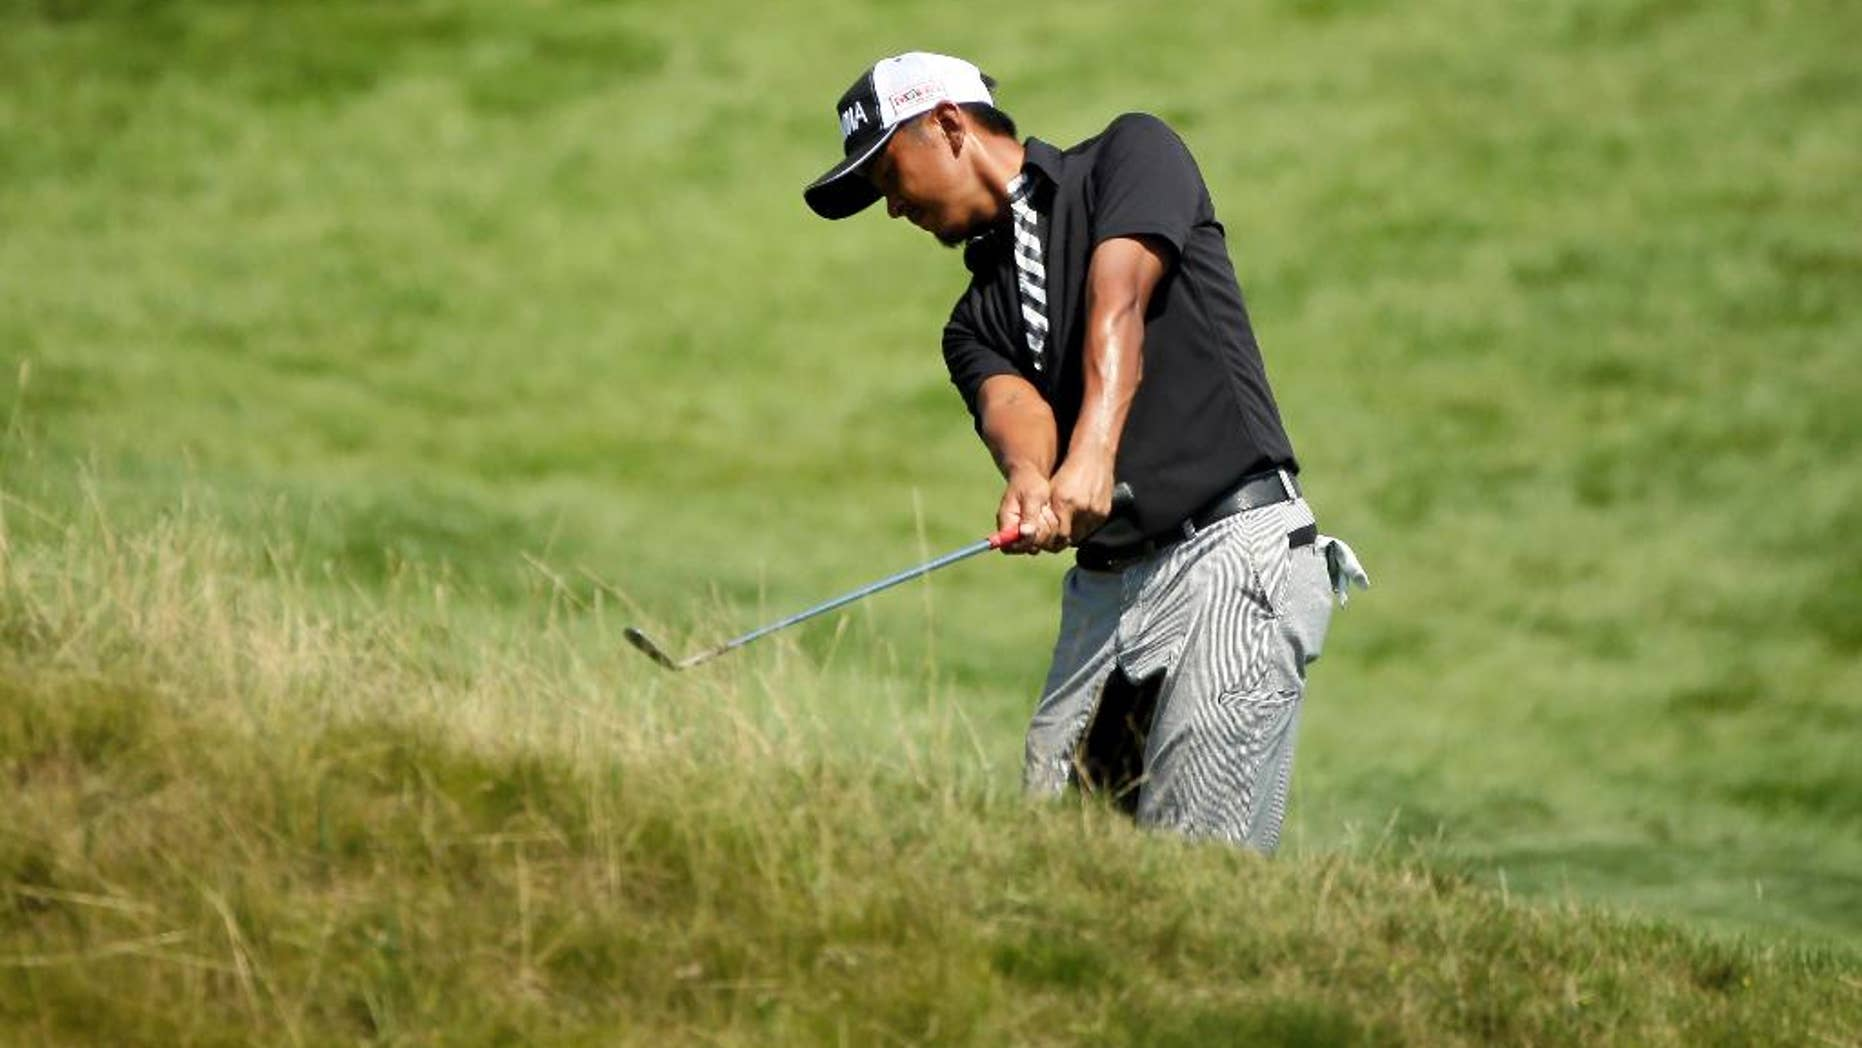 Hiroshi Iwata, of Japan, hits on the 18th hole during the second round of the PGA Championship golf tournament Friday, Aug. 14, 2015, at Whistling Straits in Haven, Wis. (AP Photo/Chris Carlson)